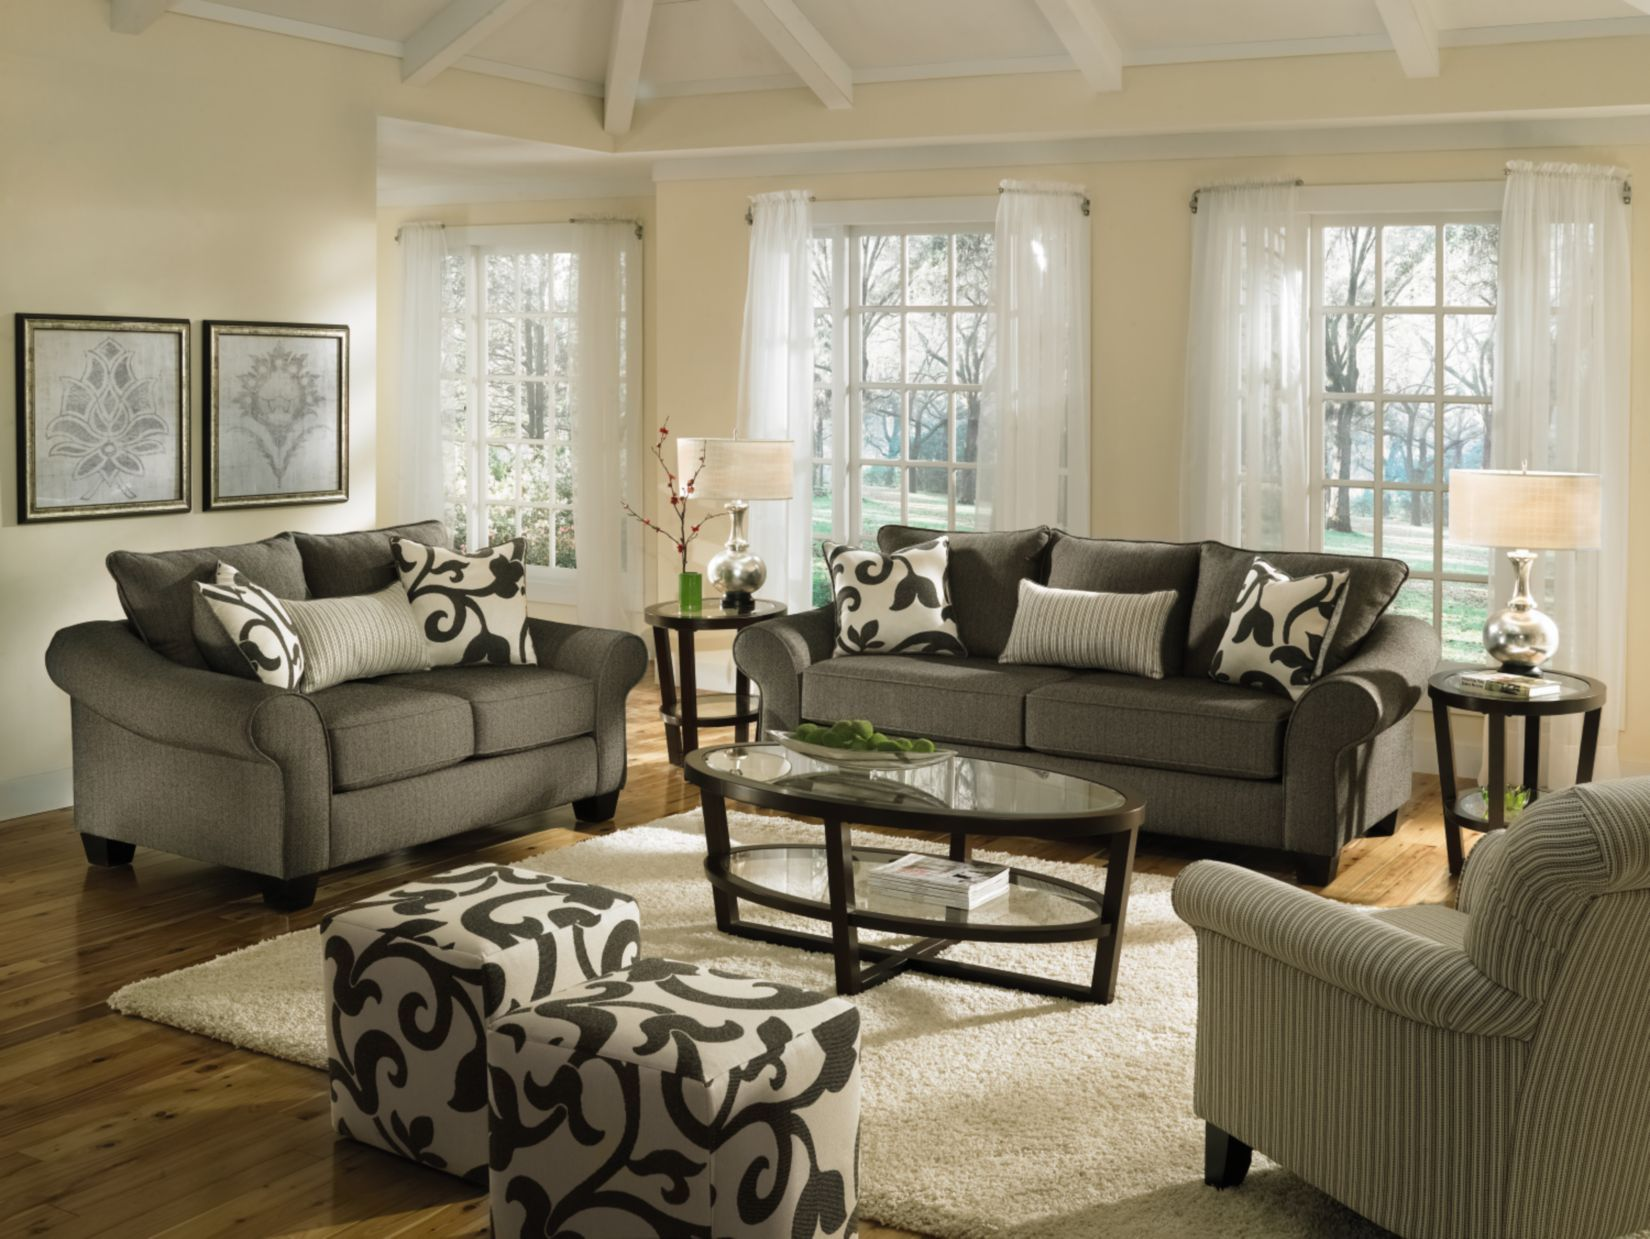 If I Ever Had 2 Living Rooms This Would Be In The Don T Touch One City Living Room Value City Furniture City Furniture